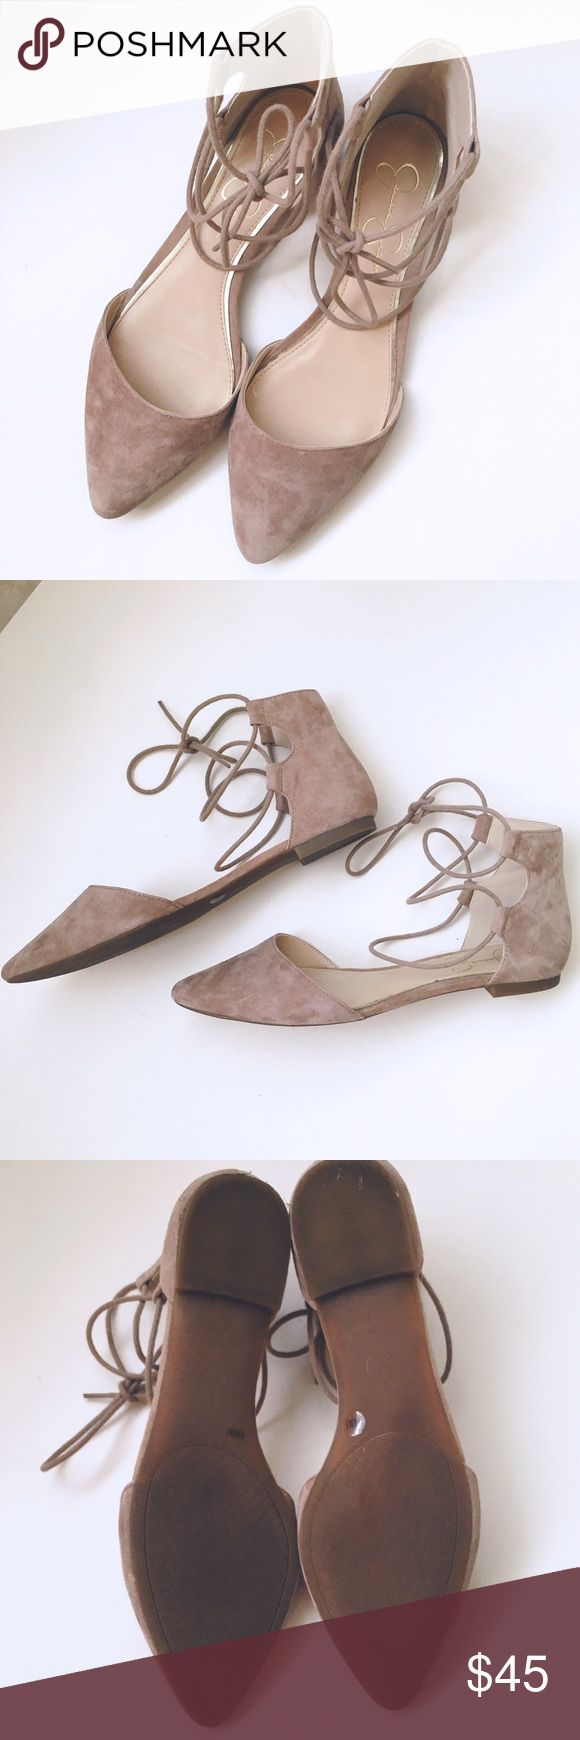 lace up flats. pointy toe suede flats, with lace ups. Barely used, slight stains on the inside heel. No stains on outside. Jessica Simpson Shoes Flats & Loafers